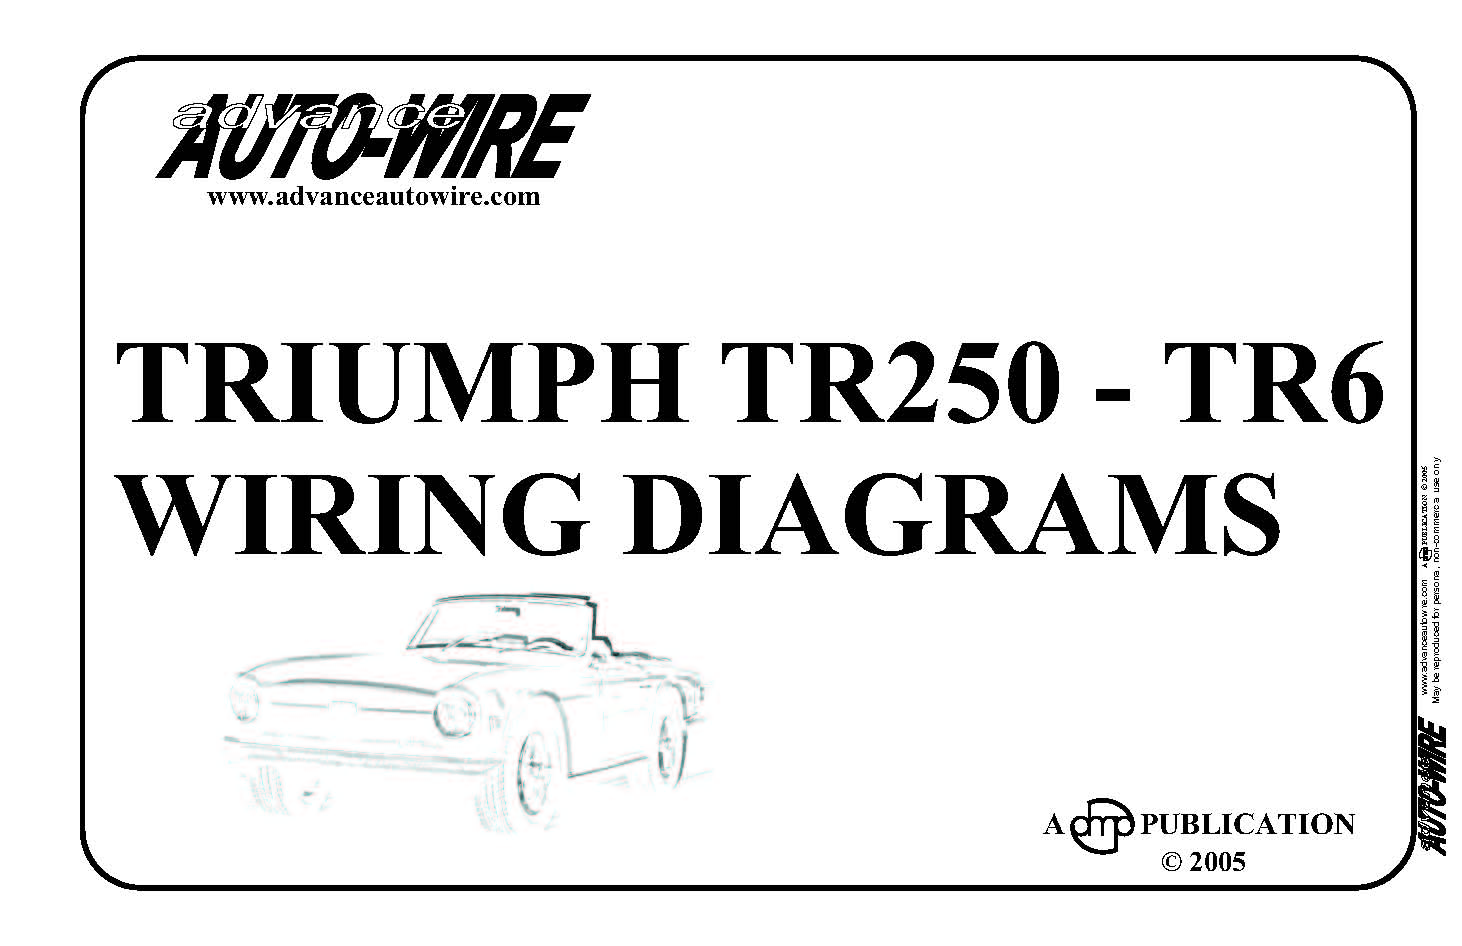 1972 Triumph Bonneville Wiring Diagram For Home Generator 1973 Tr6